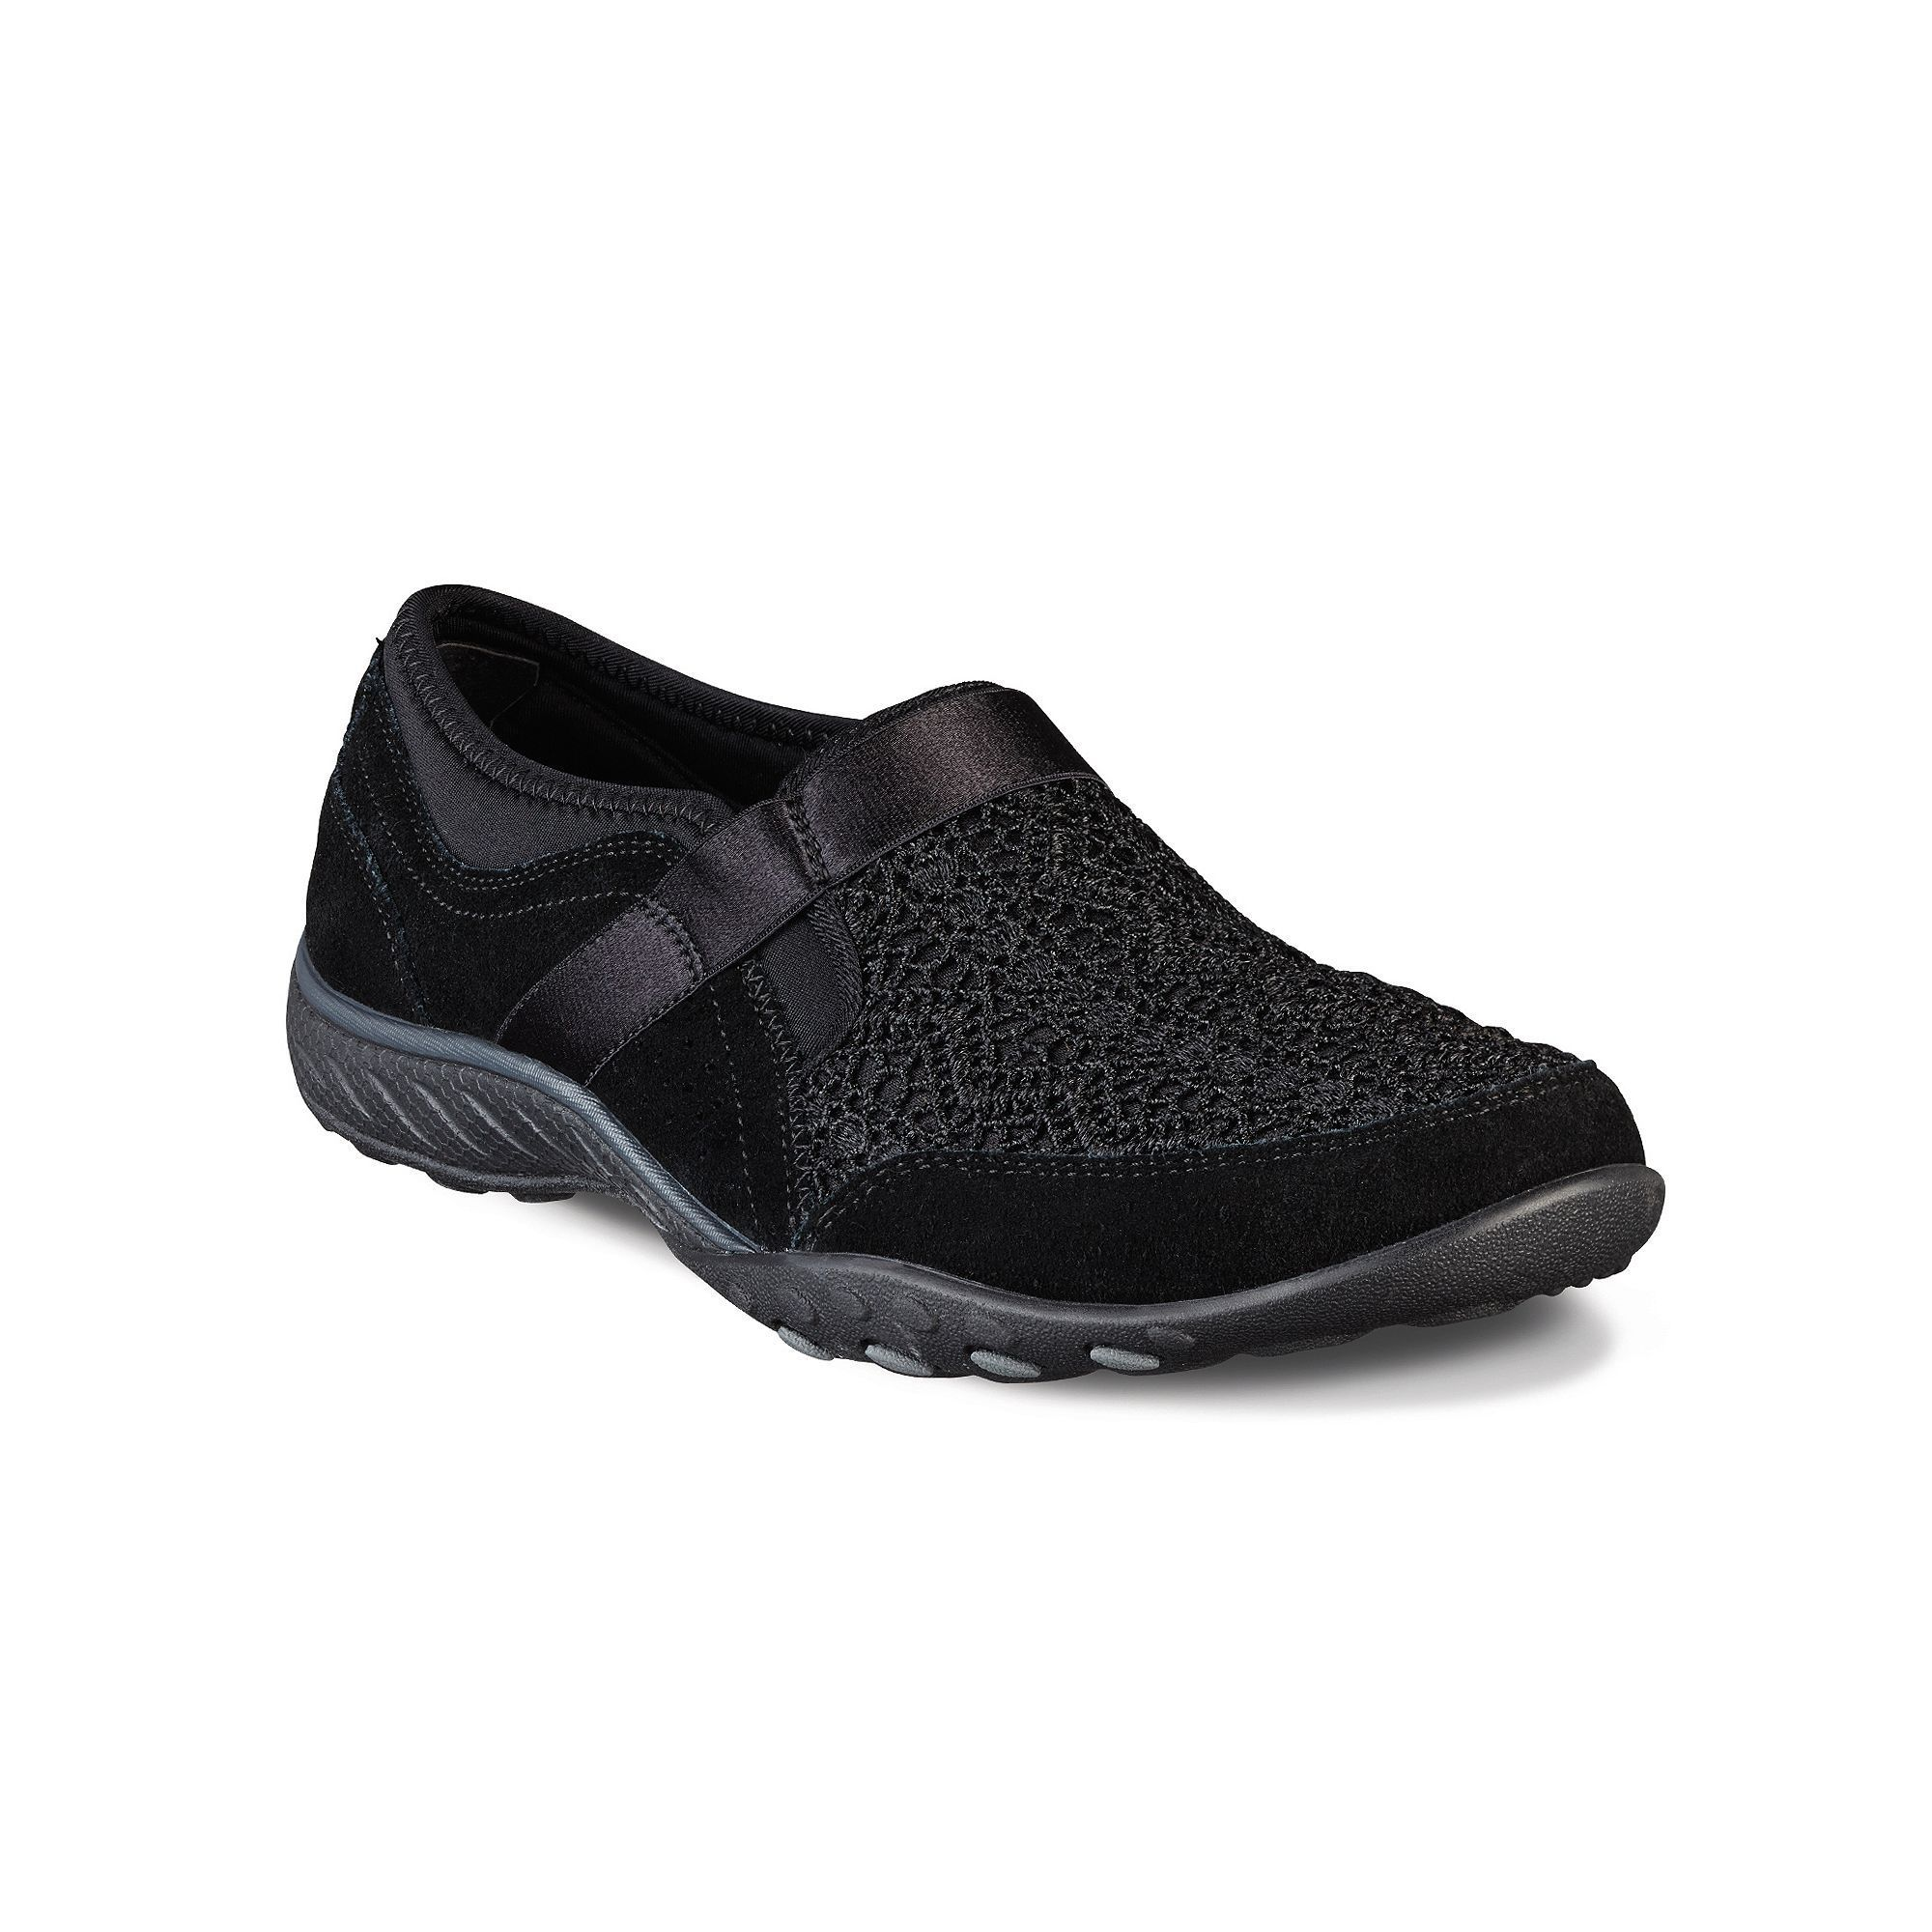 Unusual Skechers Relaxed Fit Breathe Easy Our Song Women's Slip-On Shoes Black